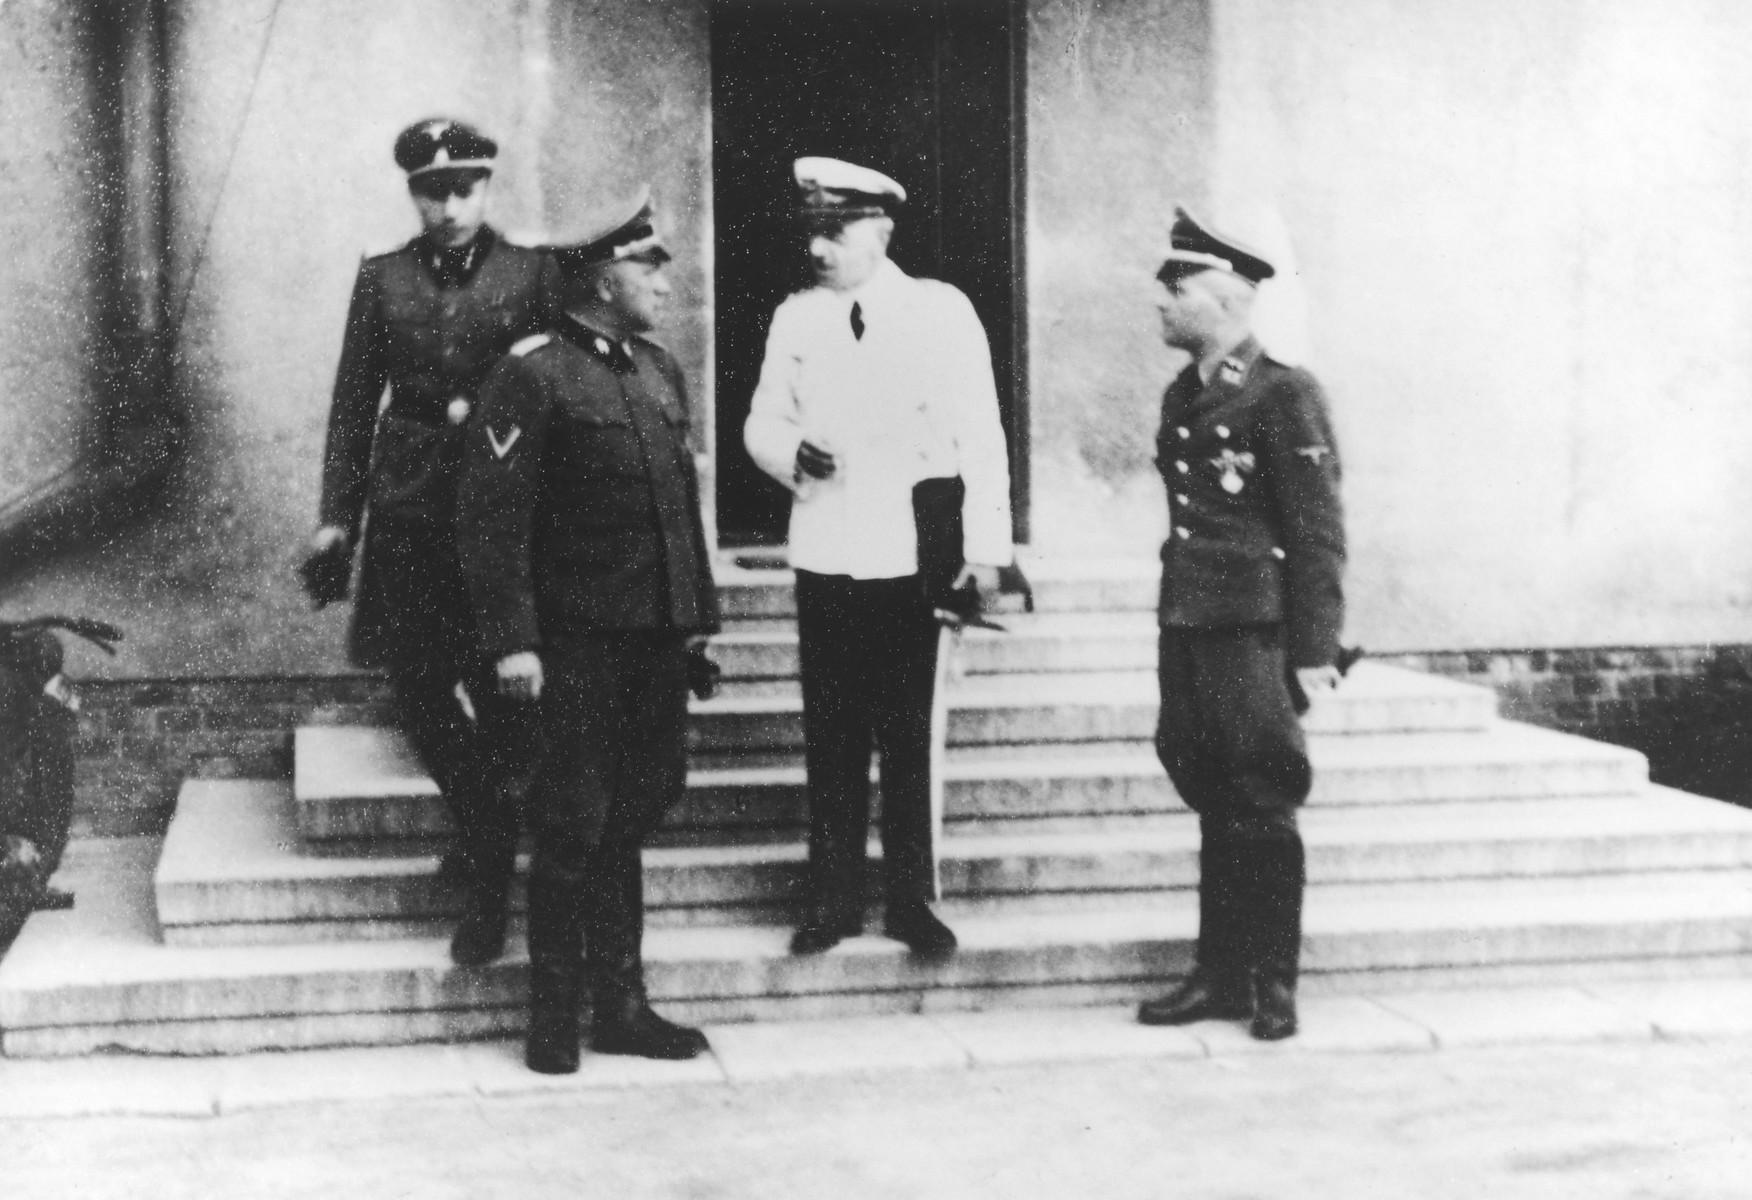 "Air Force General Quade visits Auschwitz to deliver a lecture entitled ""Germany's Aerial Warfare Leadership"".  Also pictured are SS officers Richard Baer, Karl Hoecker and Rudolf Hoess.  Picture taken at the Fuehrerheim in Auschwitz."